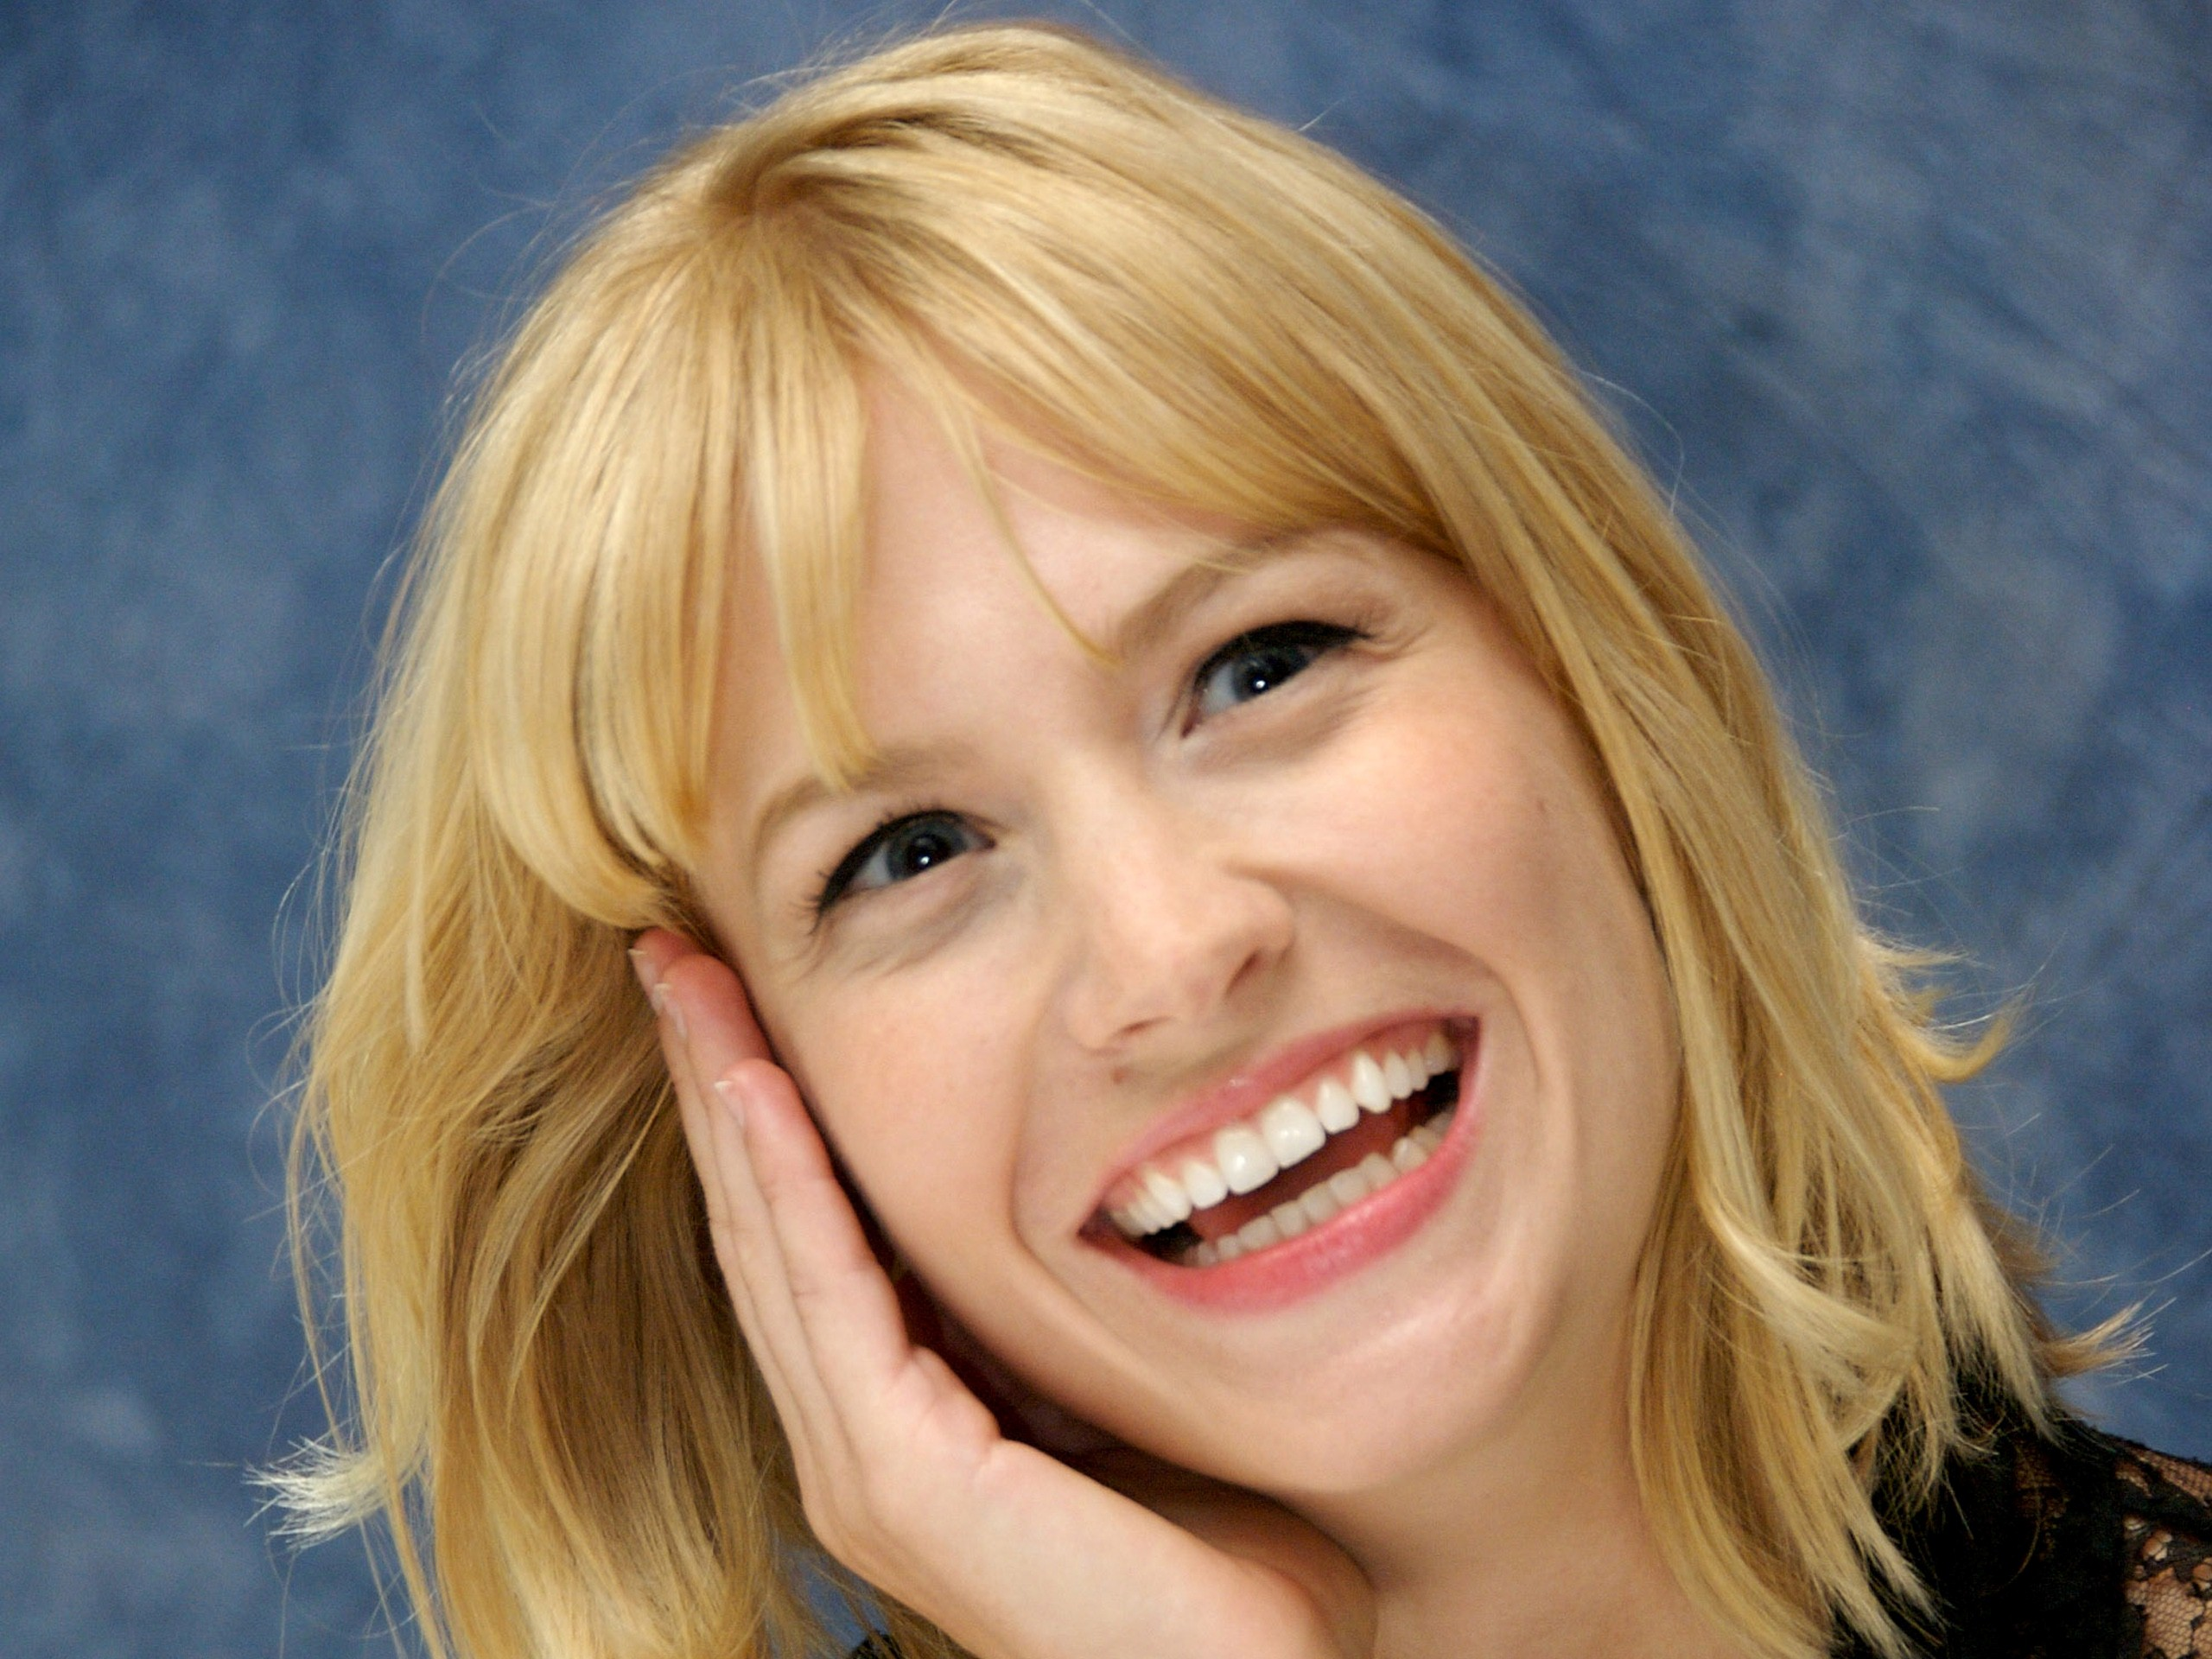 happy january jones wide wallpaper 55105